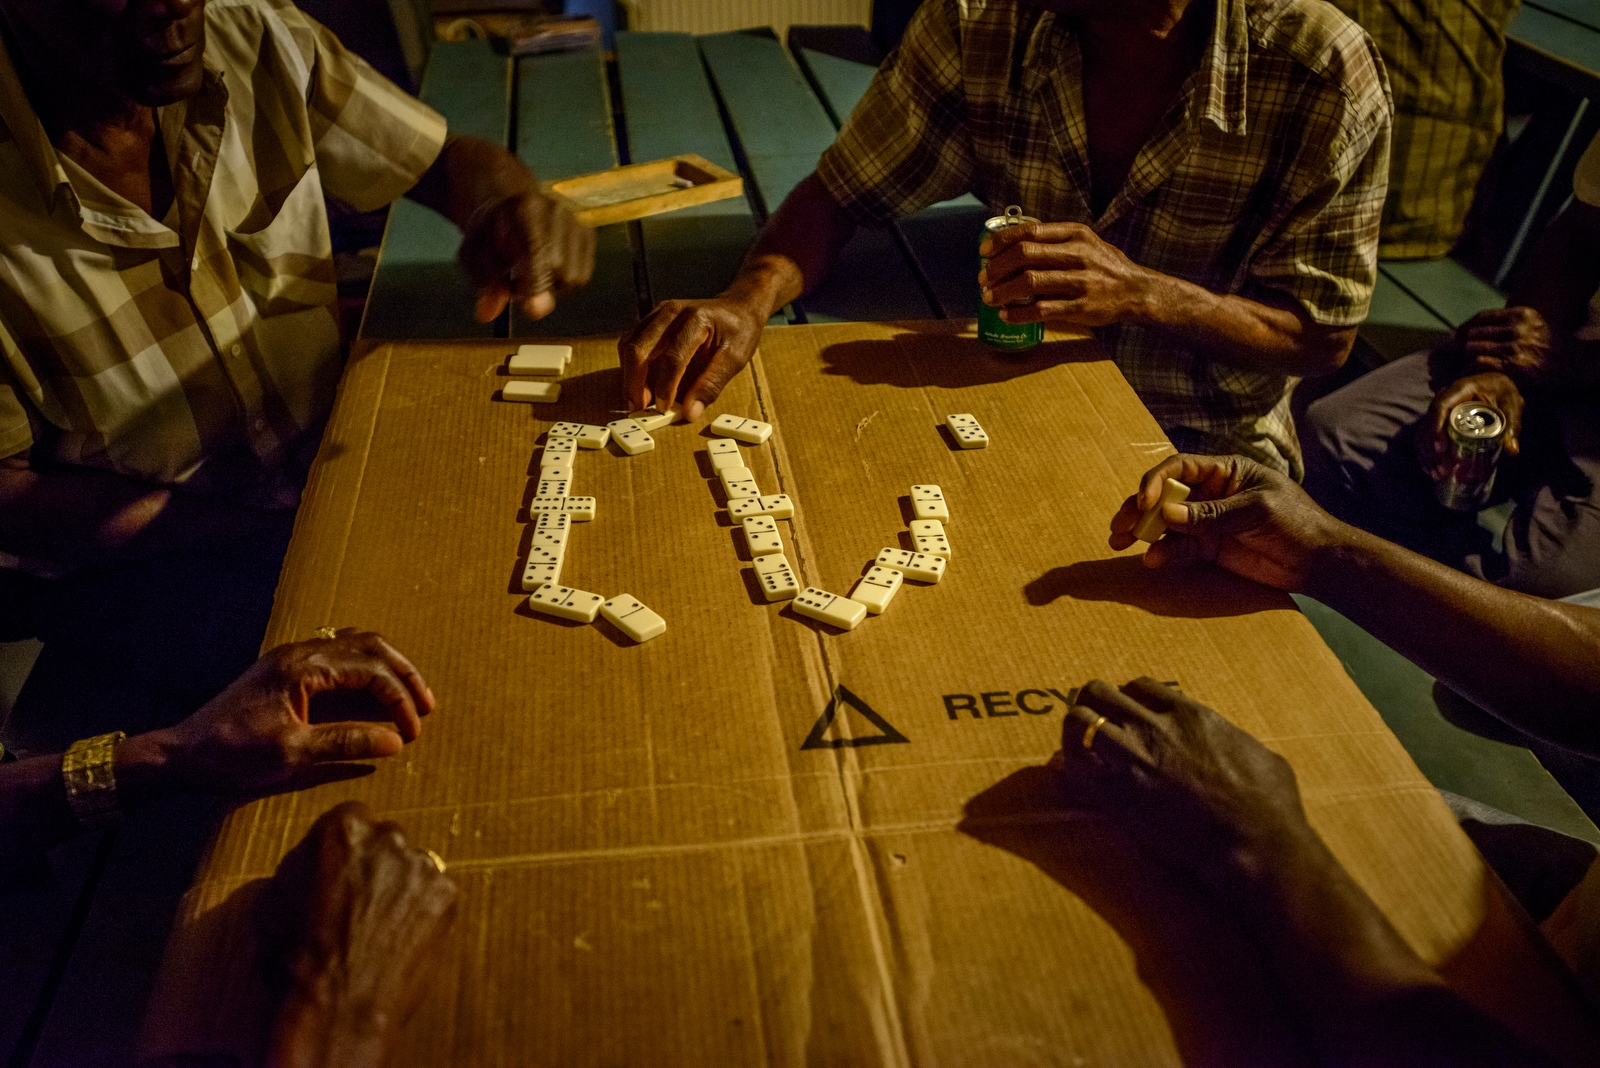 Jamaican Apple Pickers play a game of dominoes in the bunkhouse at Sunrise Orchards. Each play is 'announced' by slamming down a game piece.